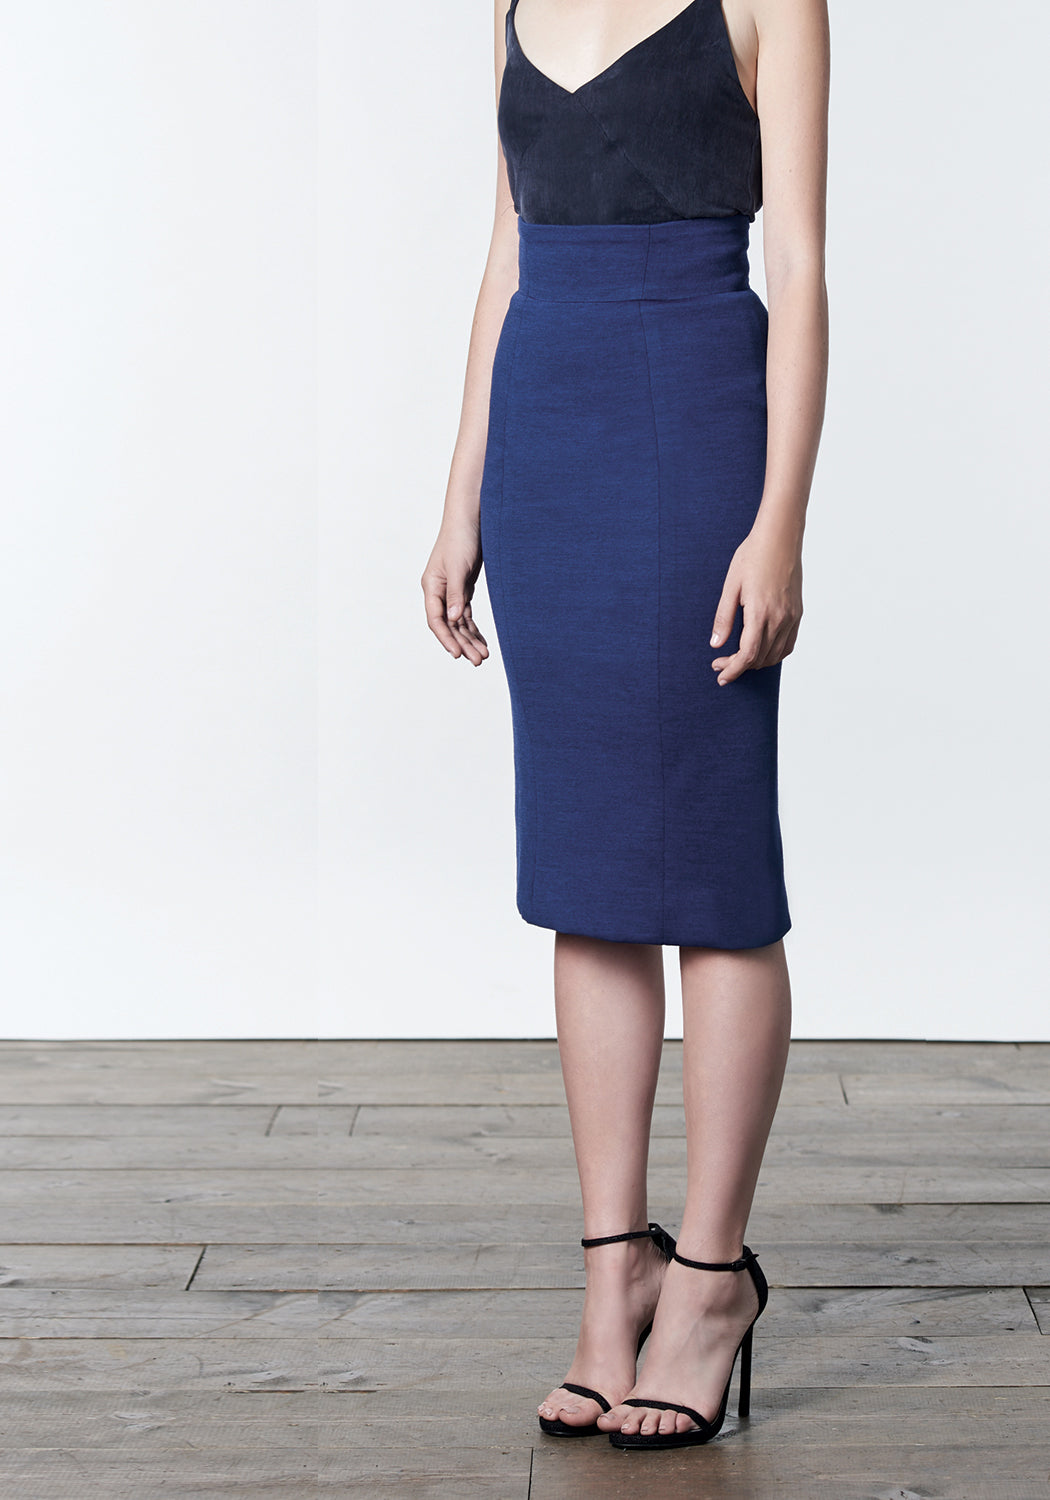 Blue wool tencel pencil skirt with back zipper details.